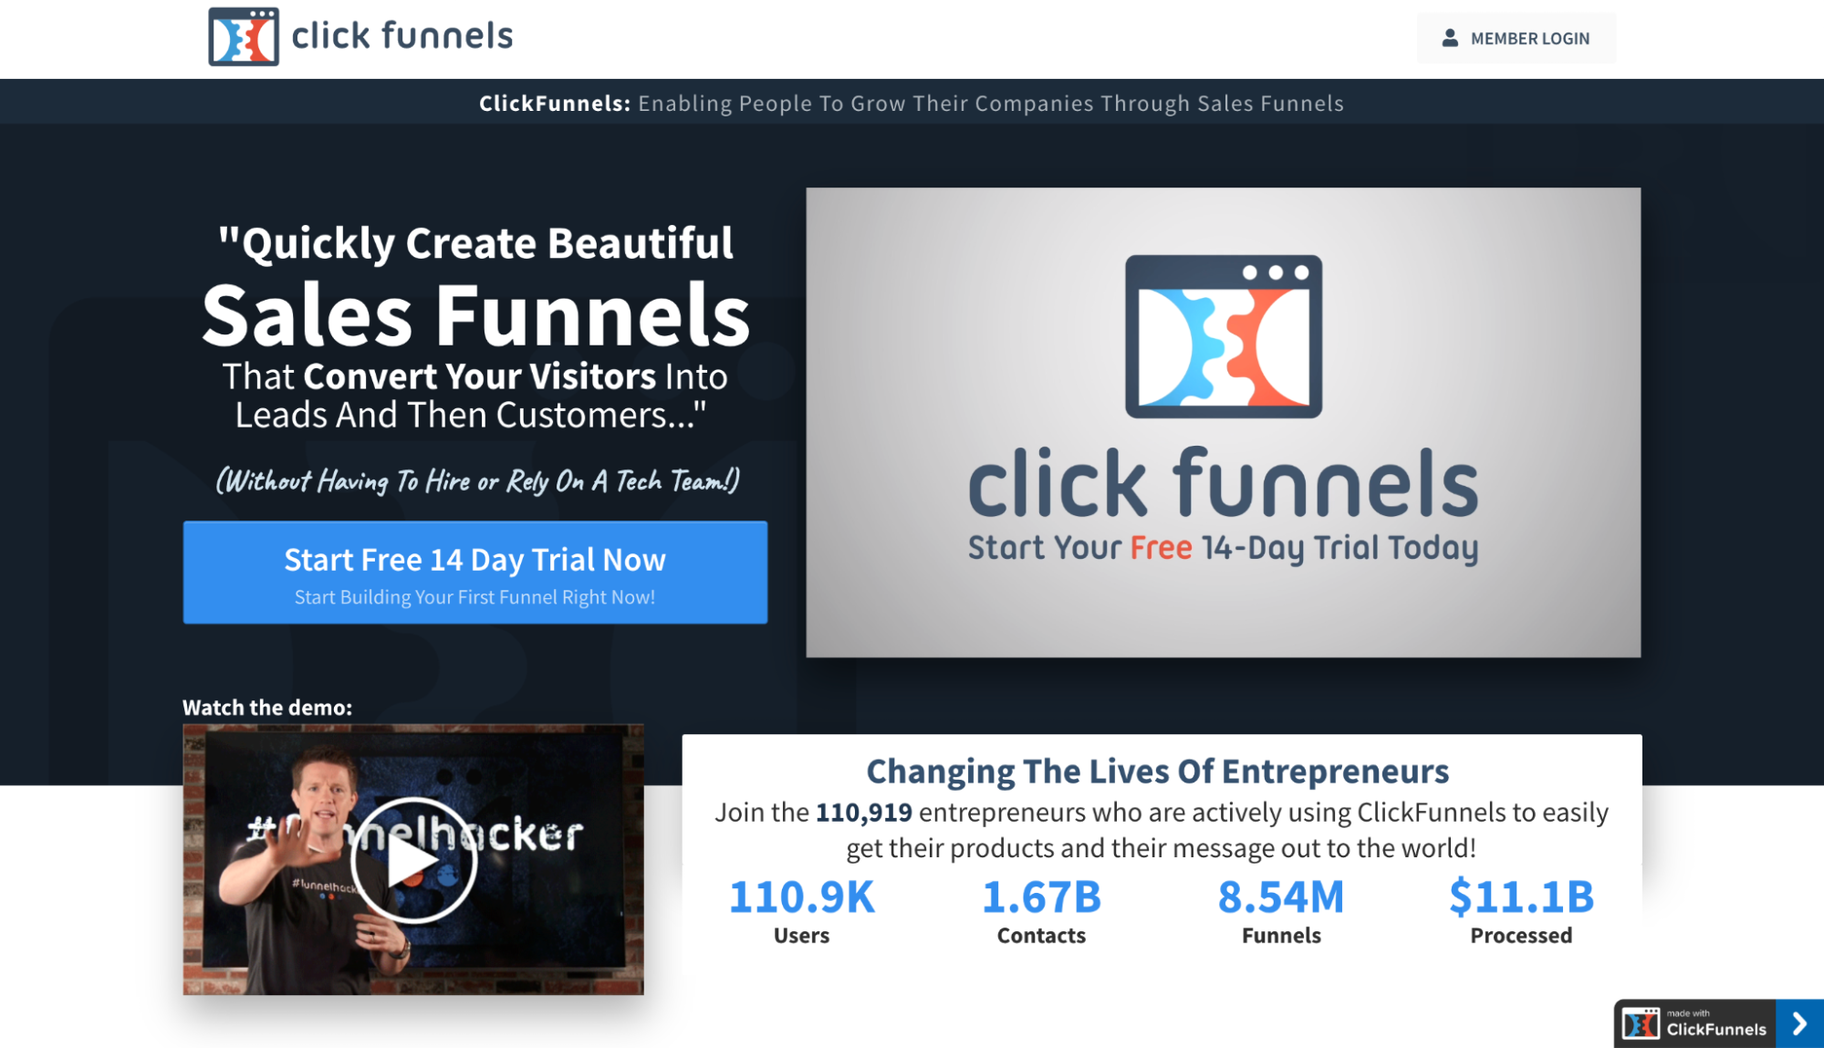 Competitors to Squarespace: ClickFunnels